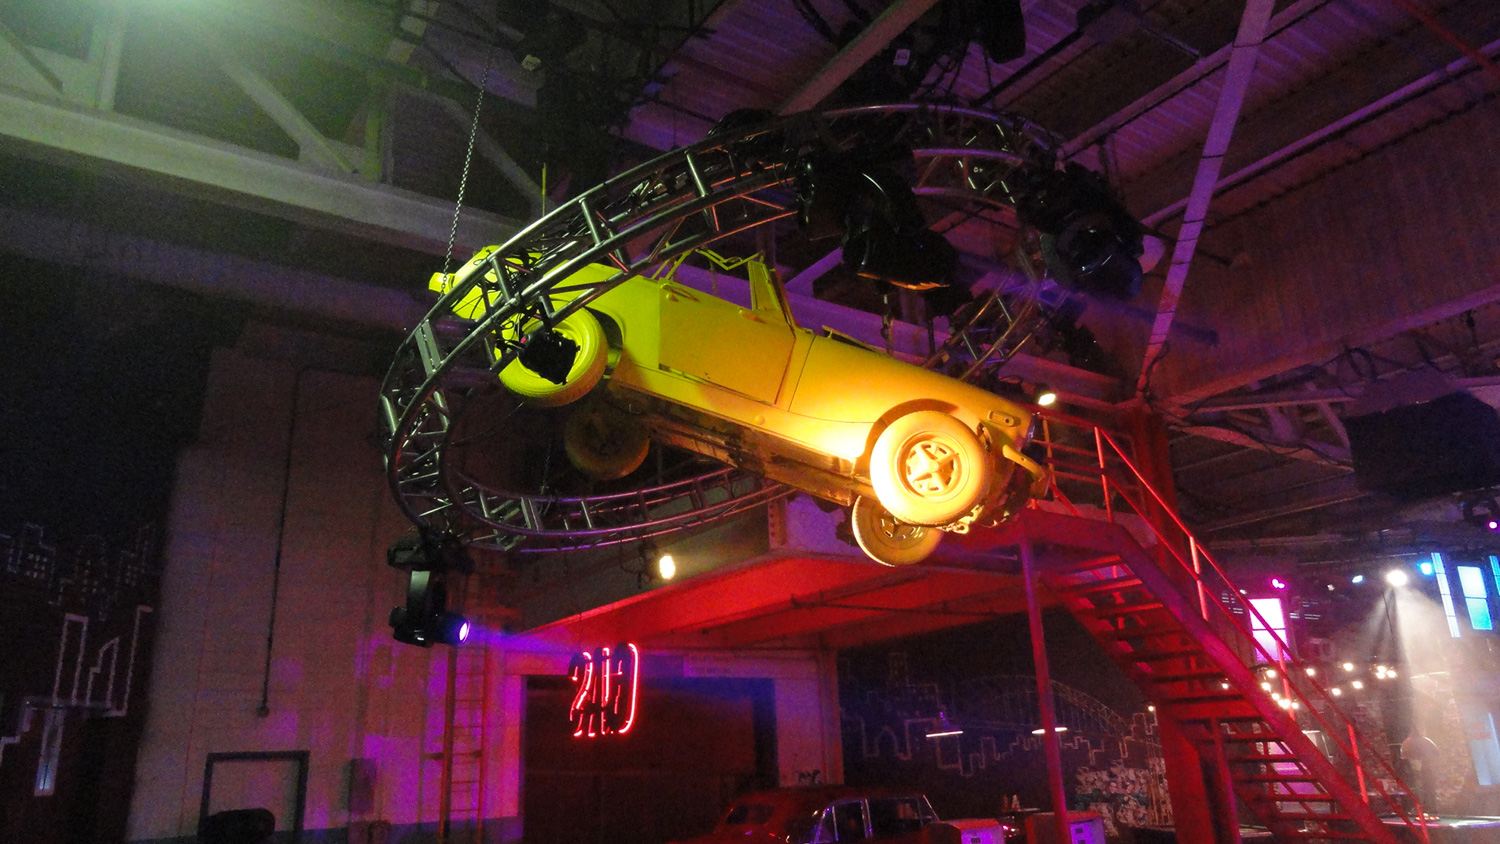 As part of our de-construction concept, we found lightweight, junked English cars, stripped them down to the bare bones, and hung them from the ceiling, ringed by circular lighting trusses.